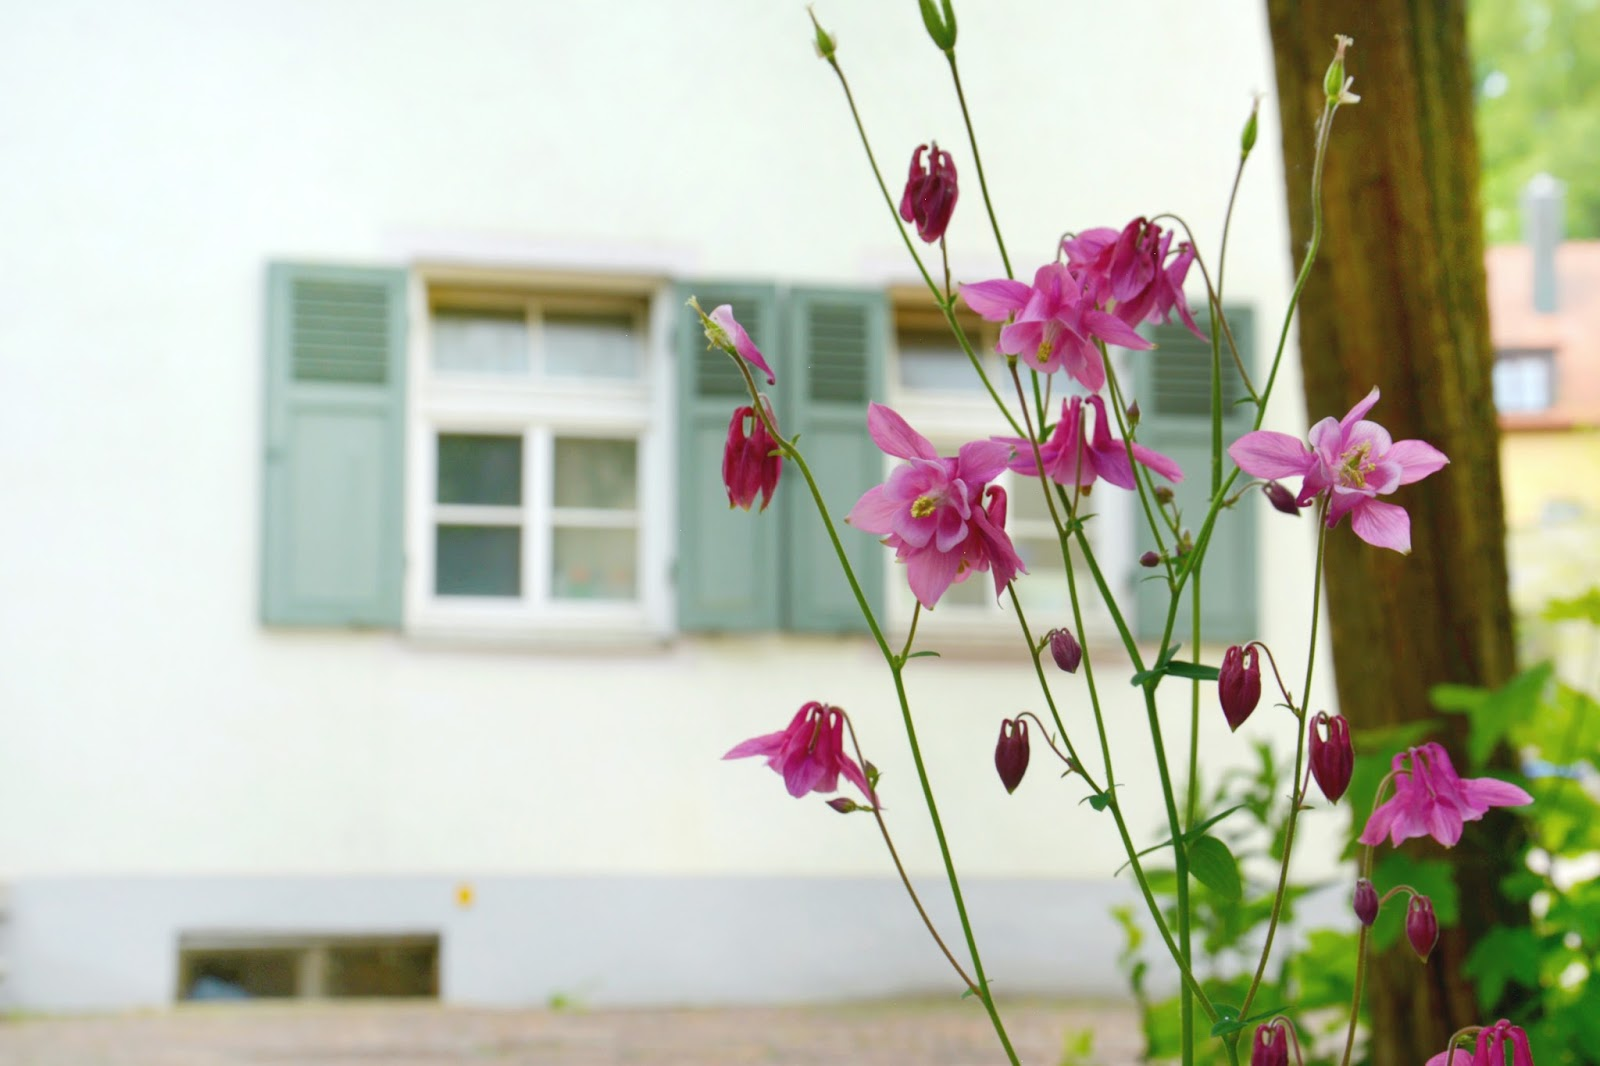 Flowers in front of a House in Biberach, Germany